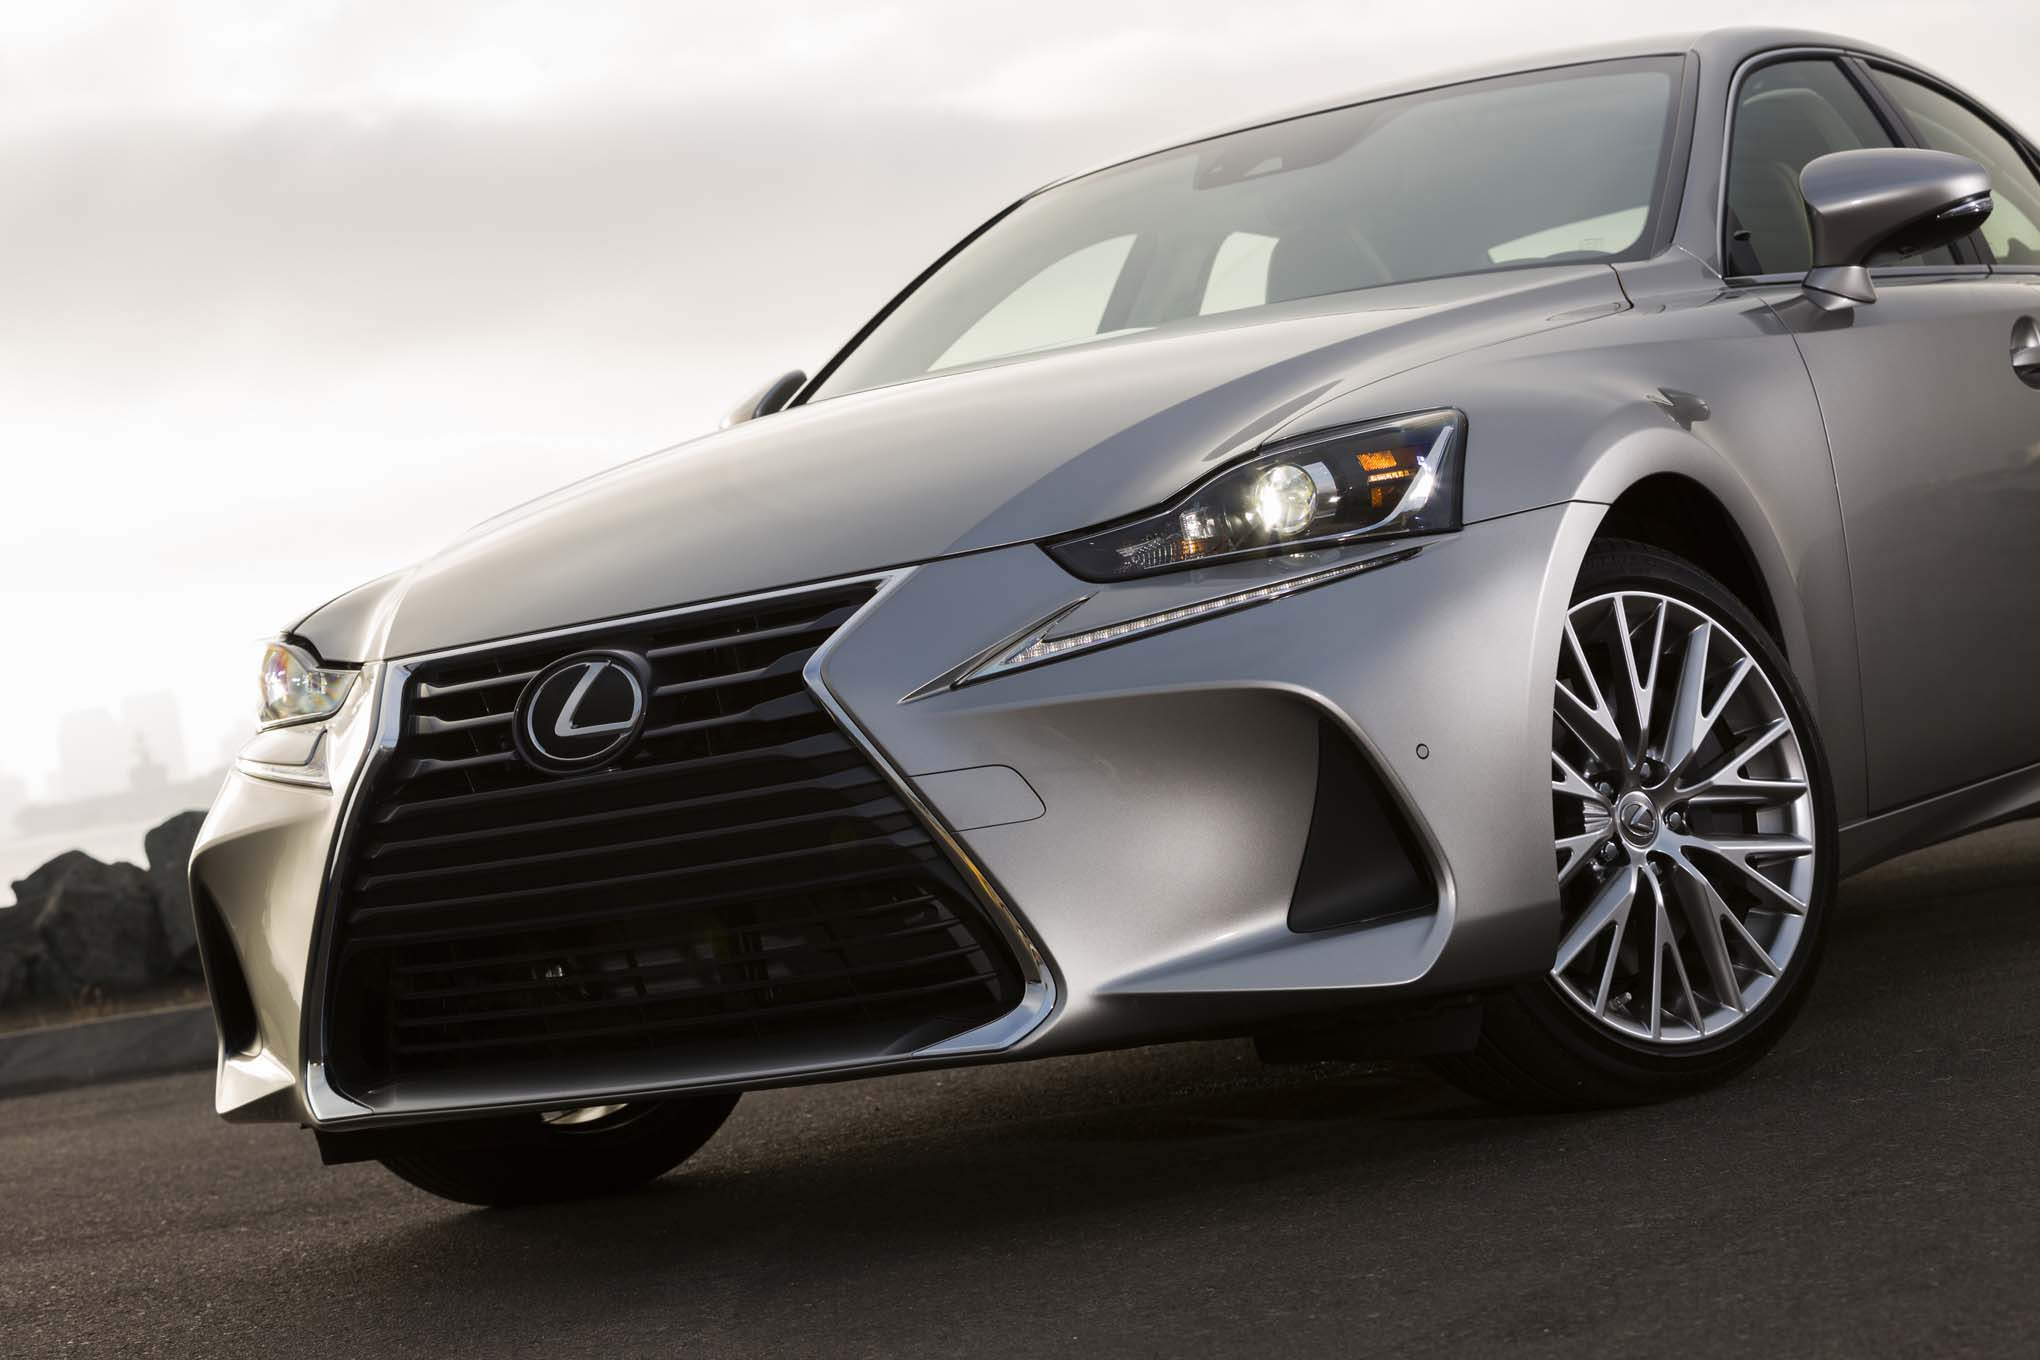 2017 Lexus IS Front Grille View